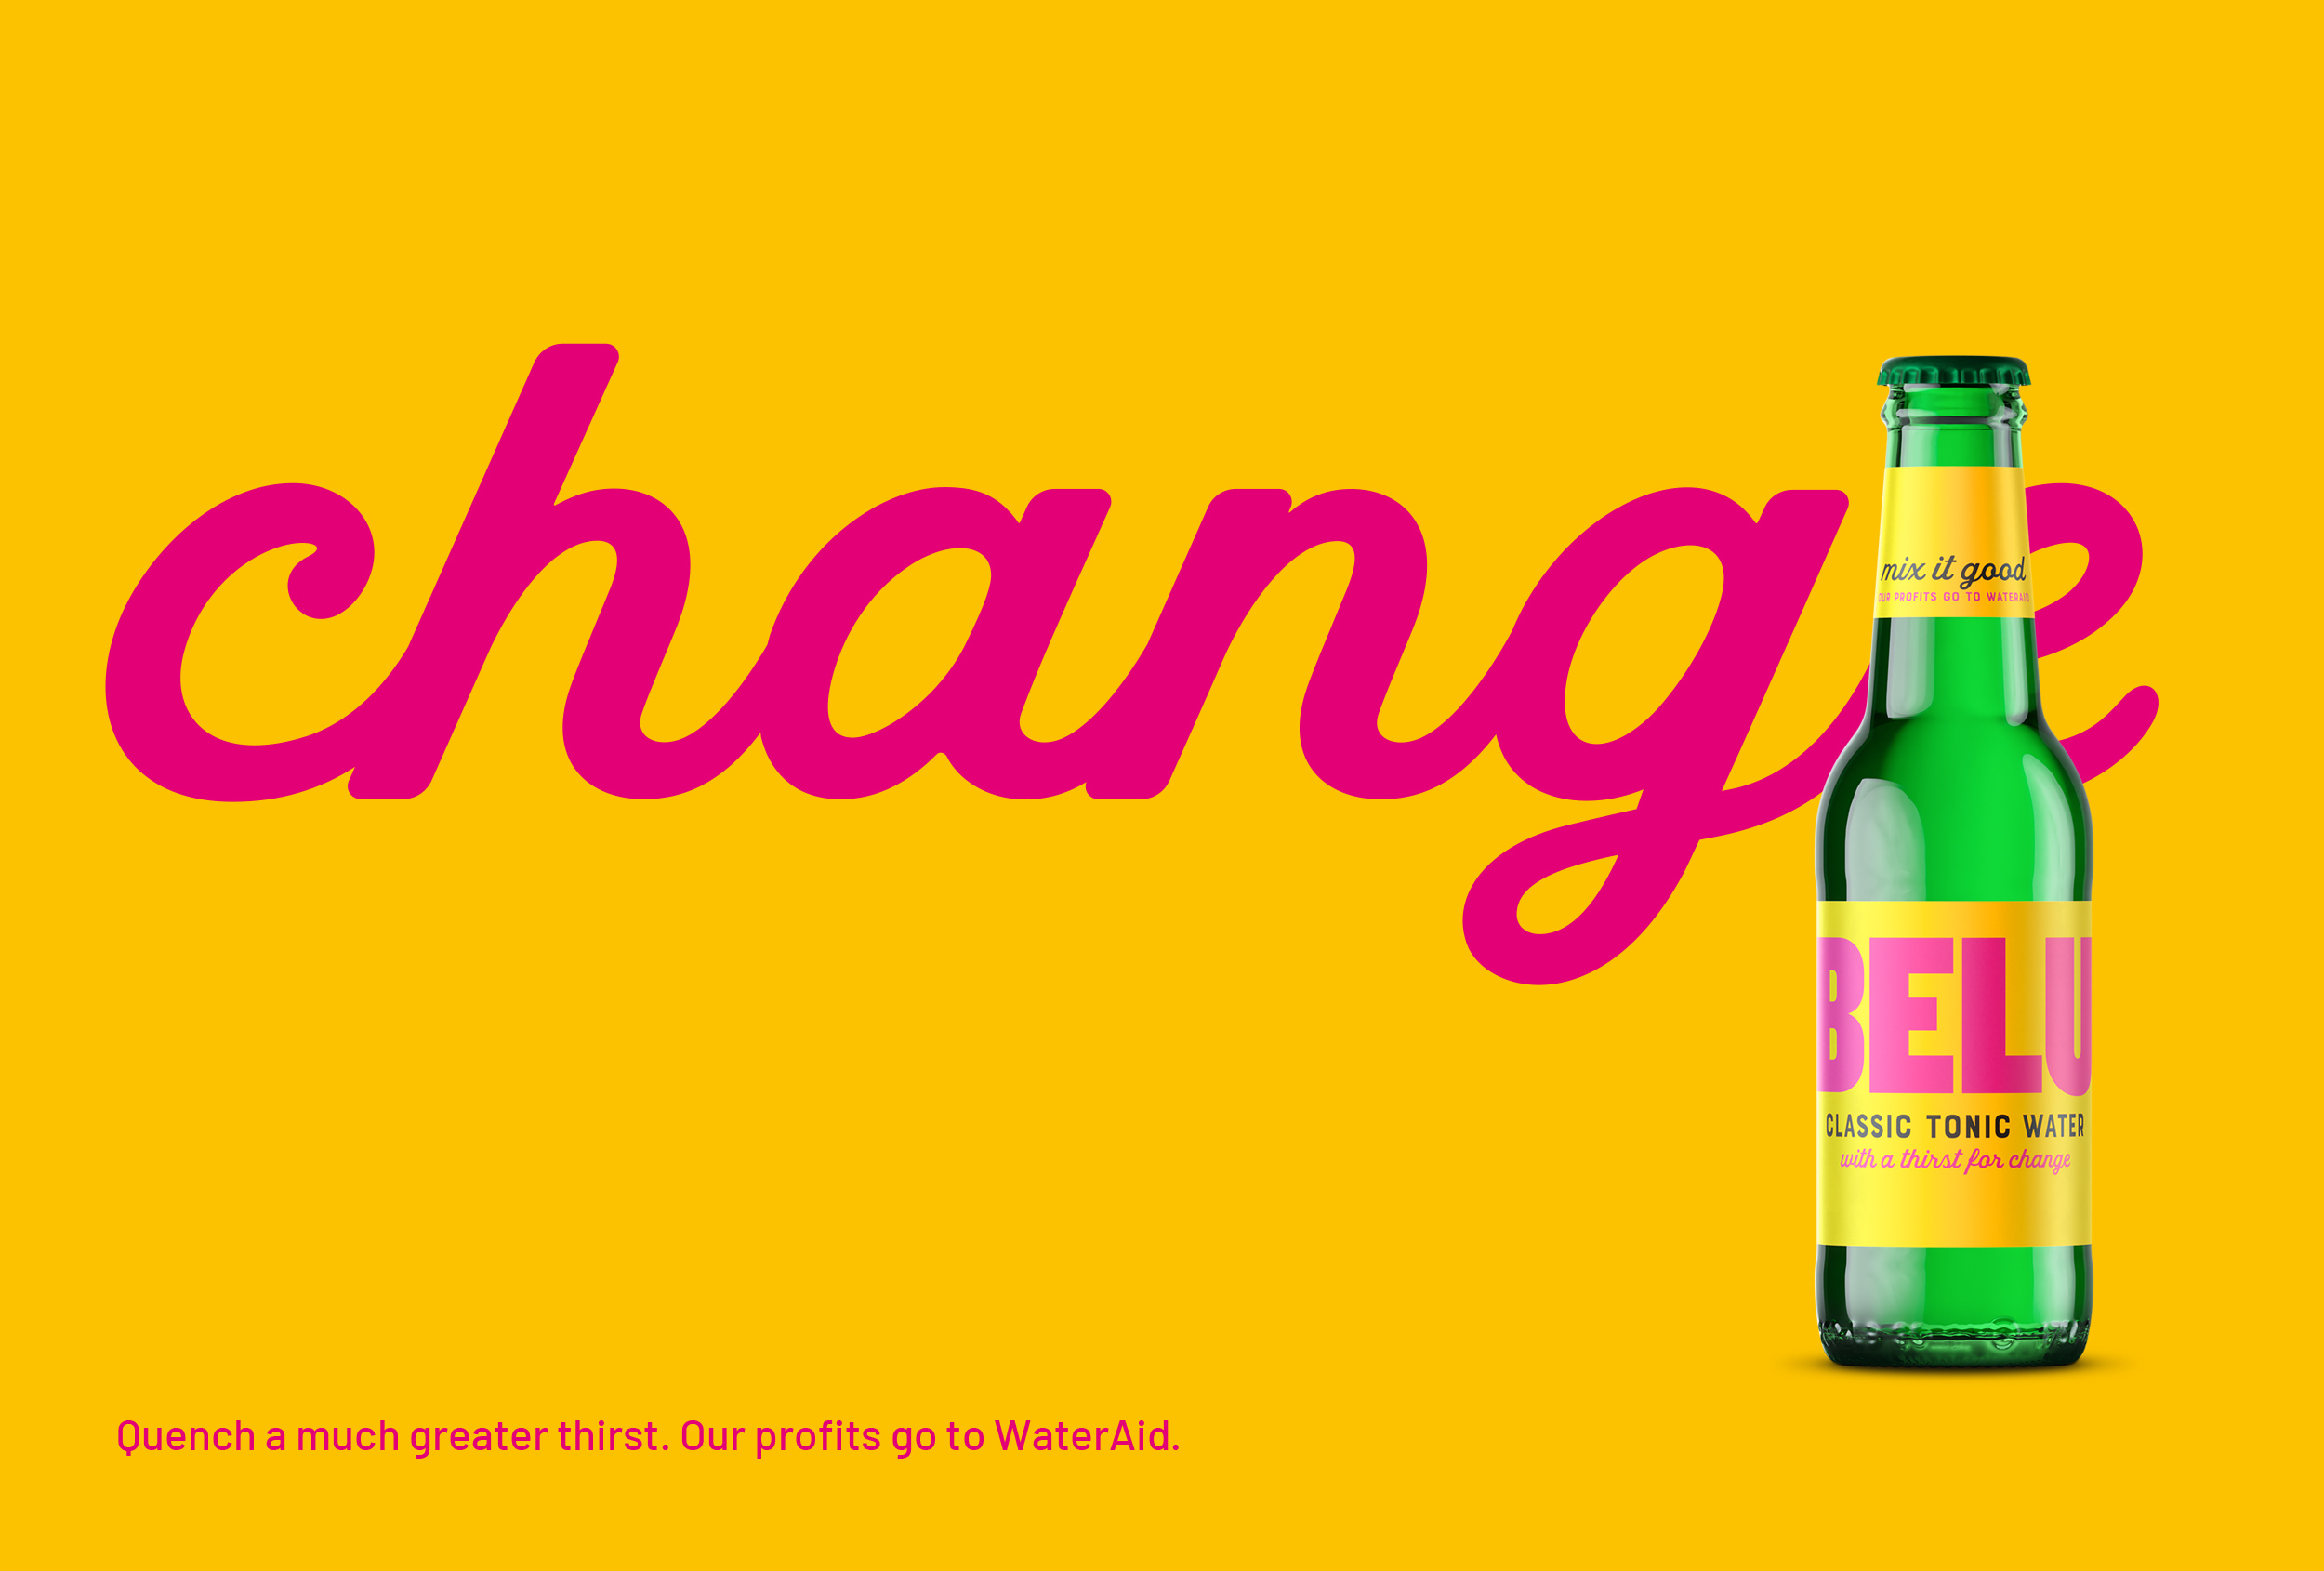 'With a thirst for change' – one of three straplines we created for Belu's range of mixers.